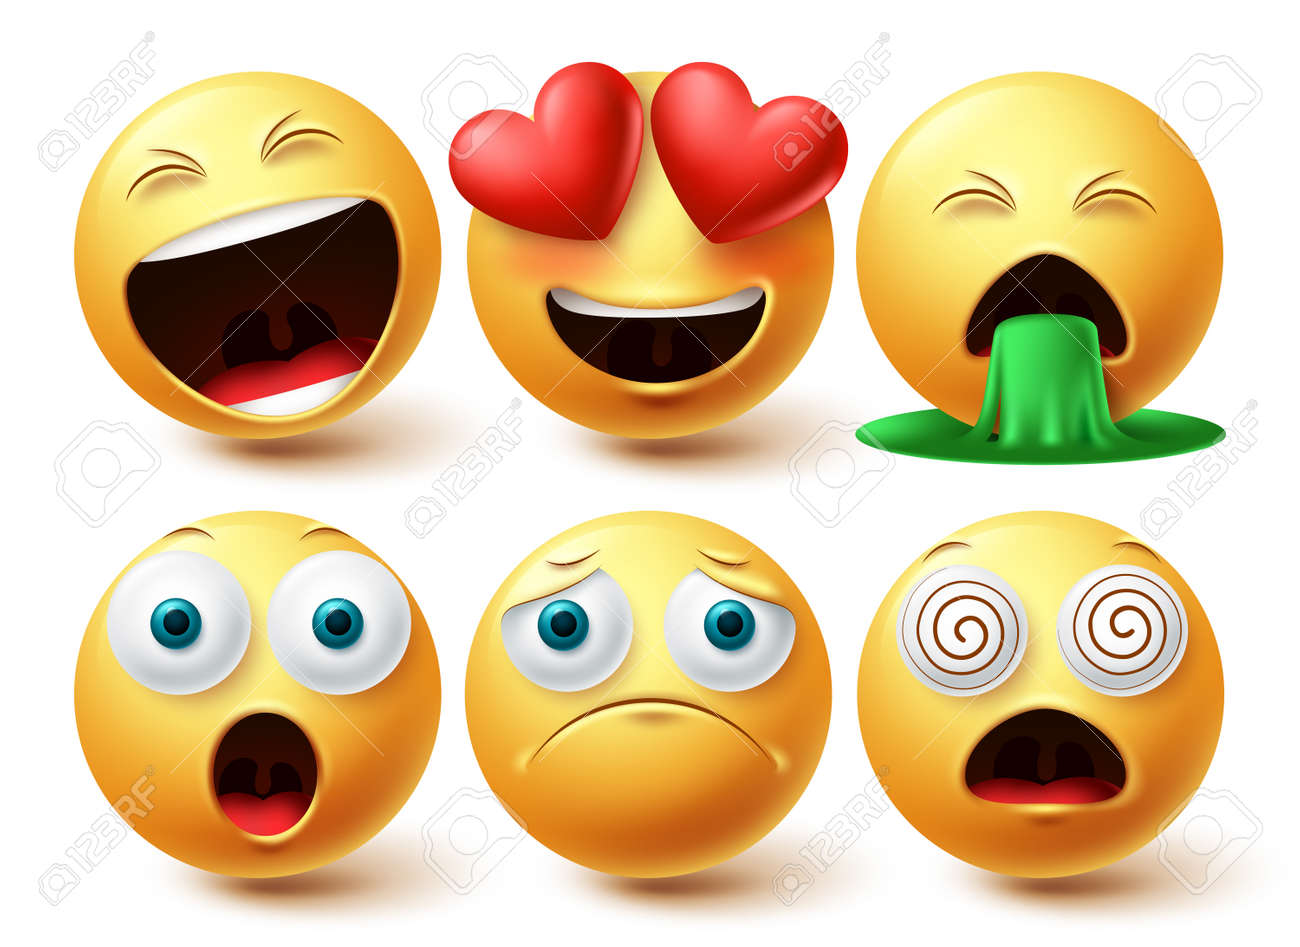 Smiley emoji faces vector set. Smileys emojis yellow icon collection with inlove, happy and sad facial expression in white isolated background. Vector illustration - 171747791